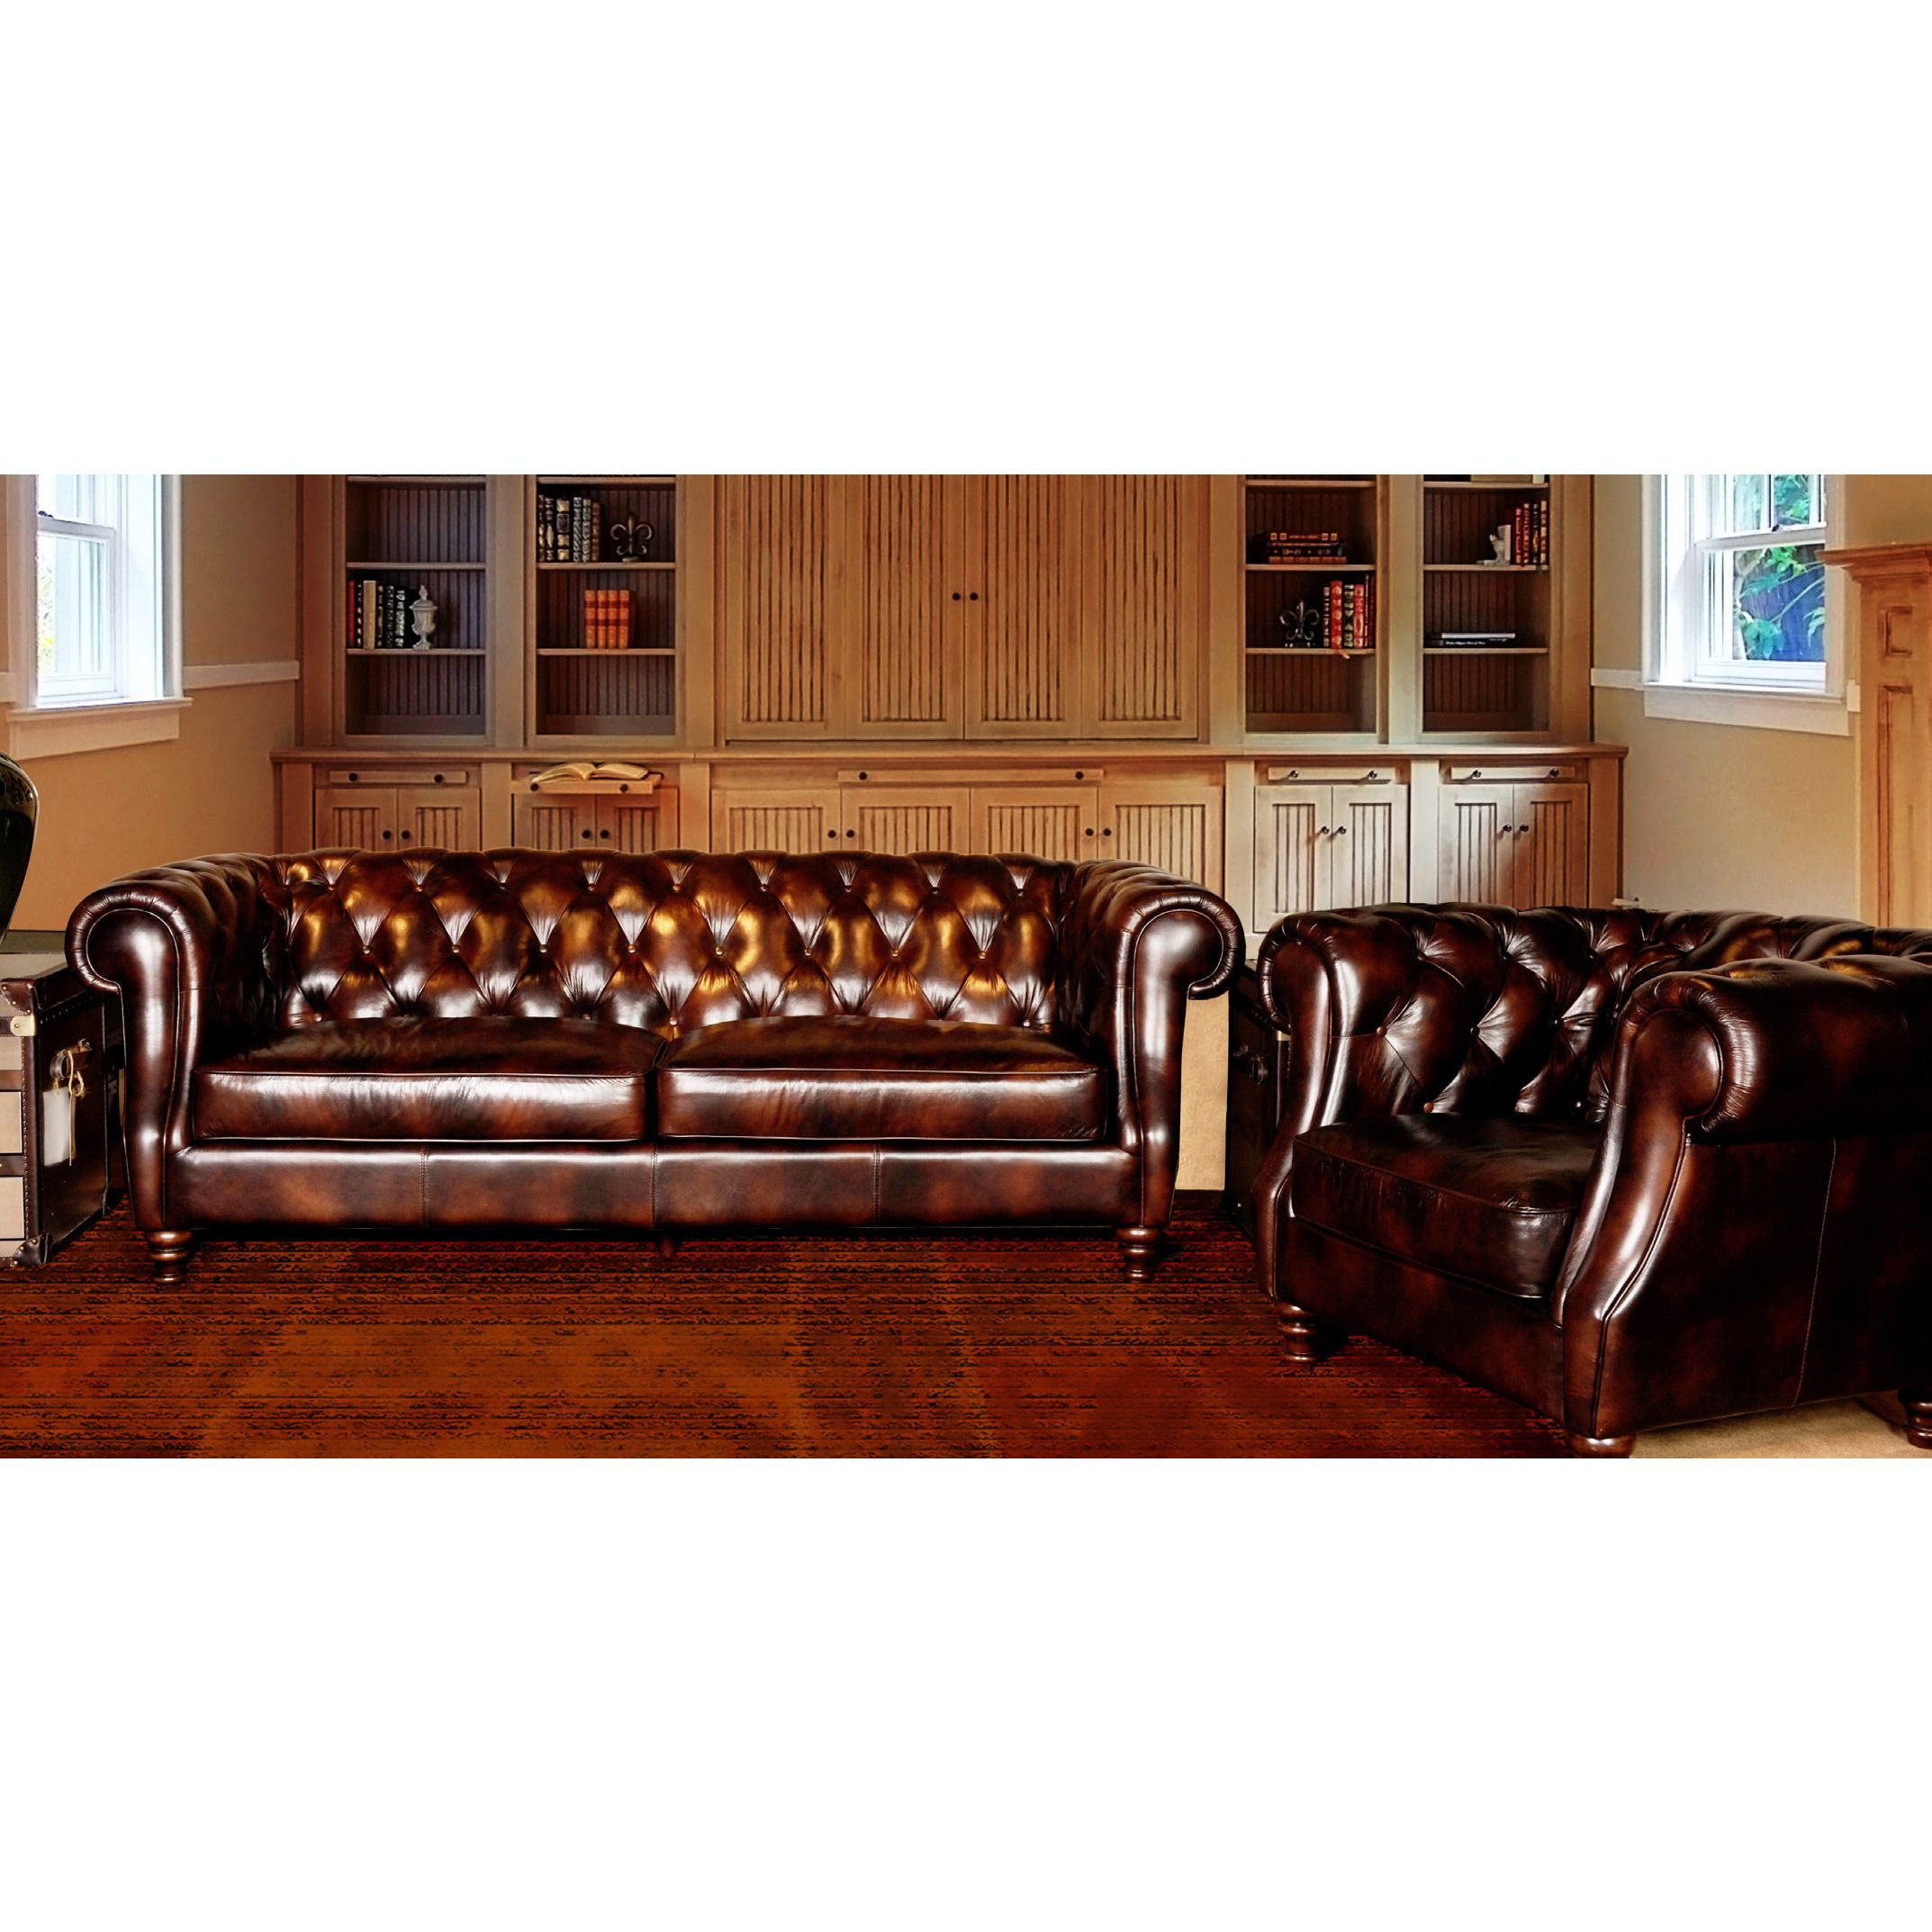 Antique 19thc Leather Chesterfield Sofa Drop Arm Hand   Full Tacked  Restoration 1900 1950 Photo | Couches | Pinterest